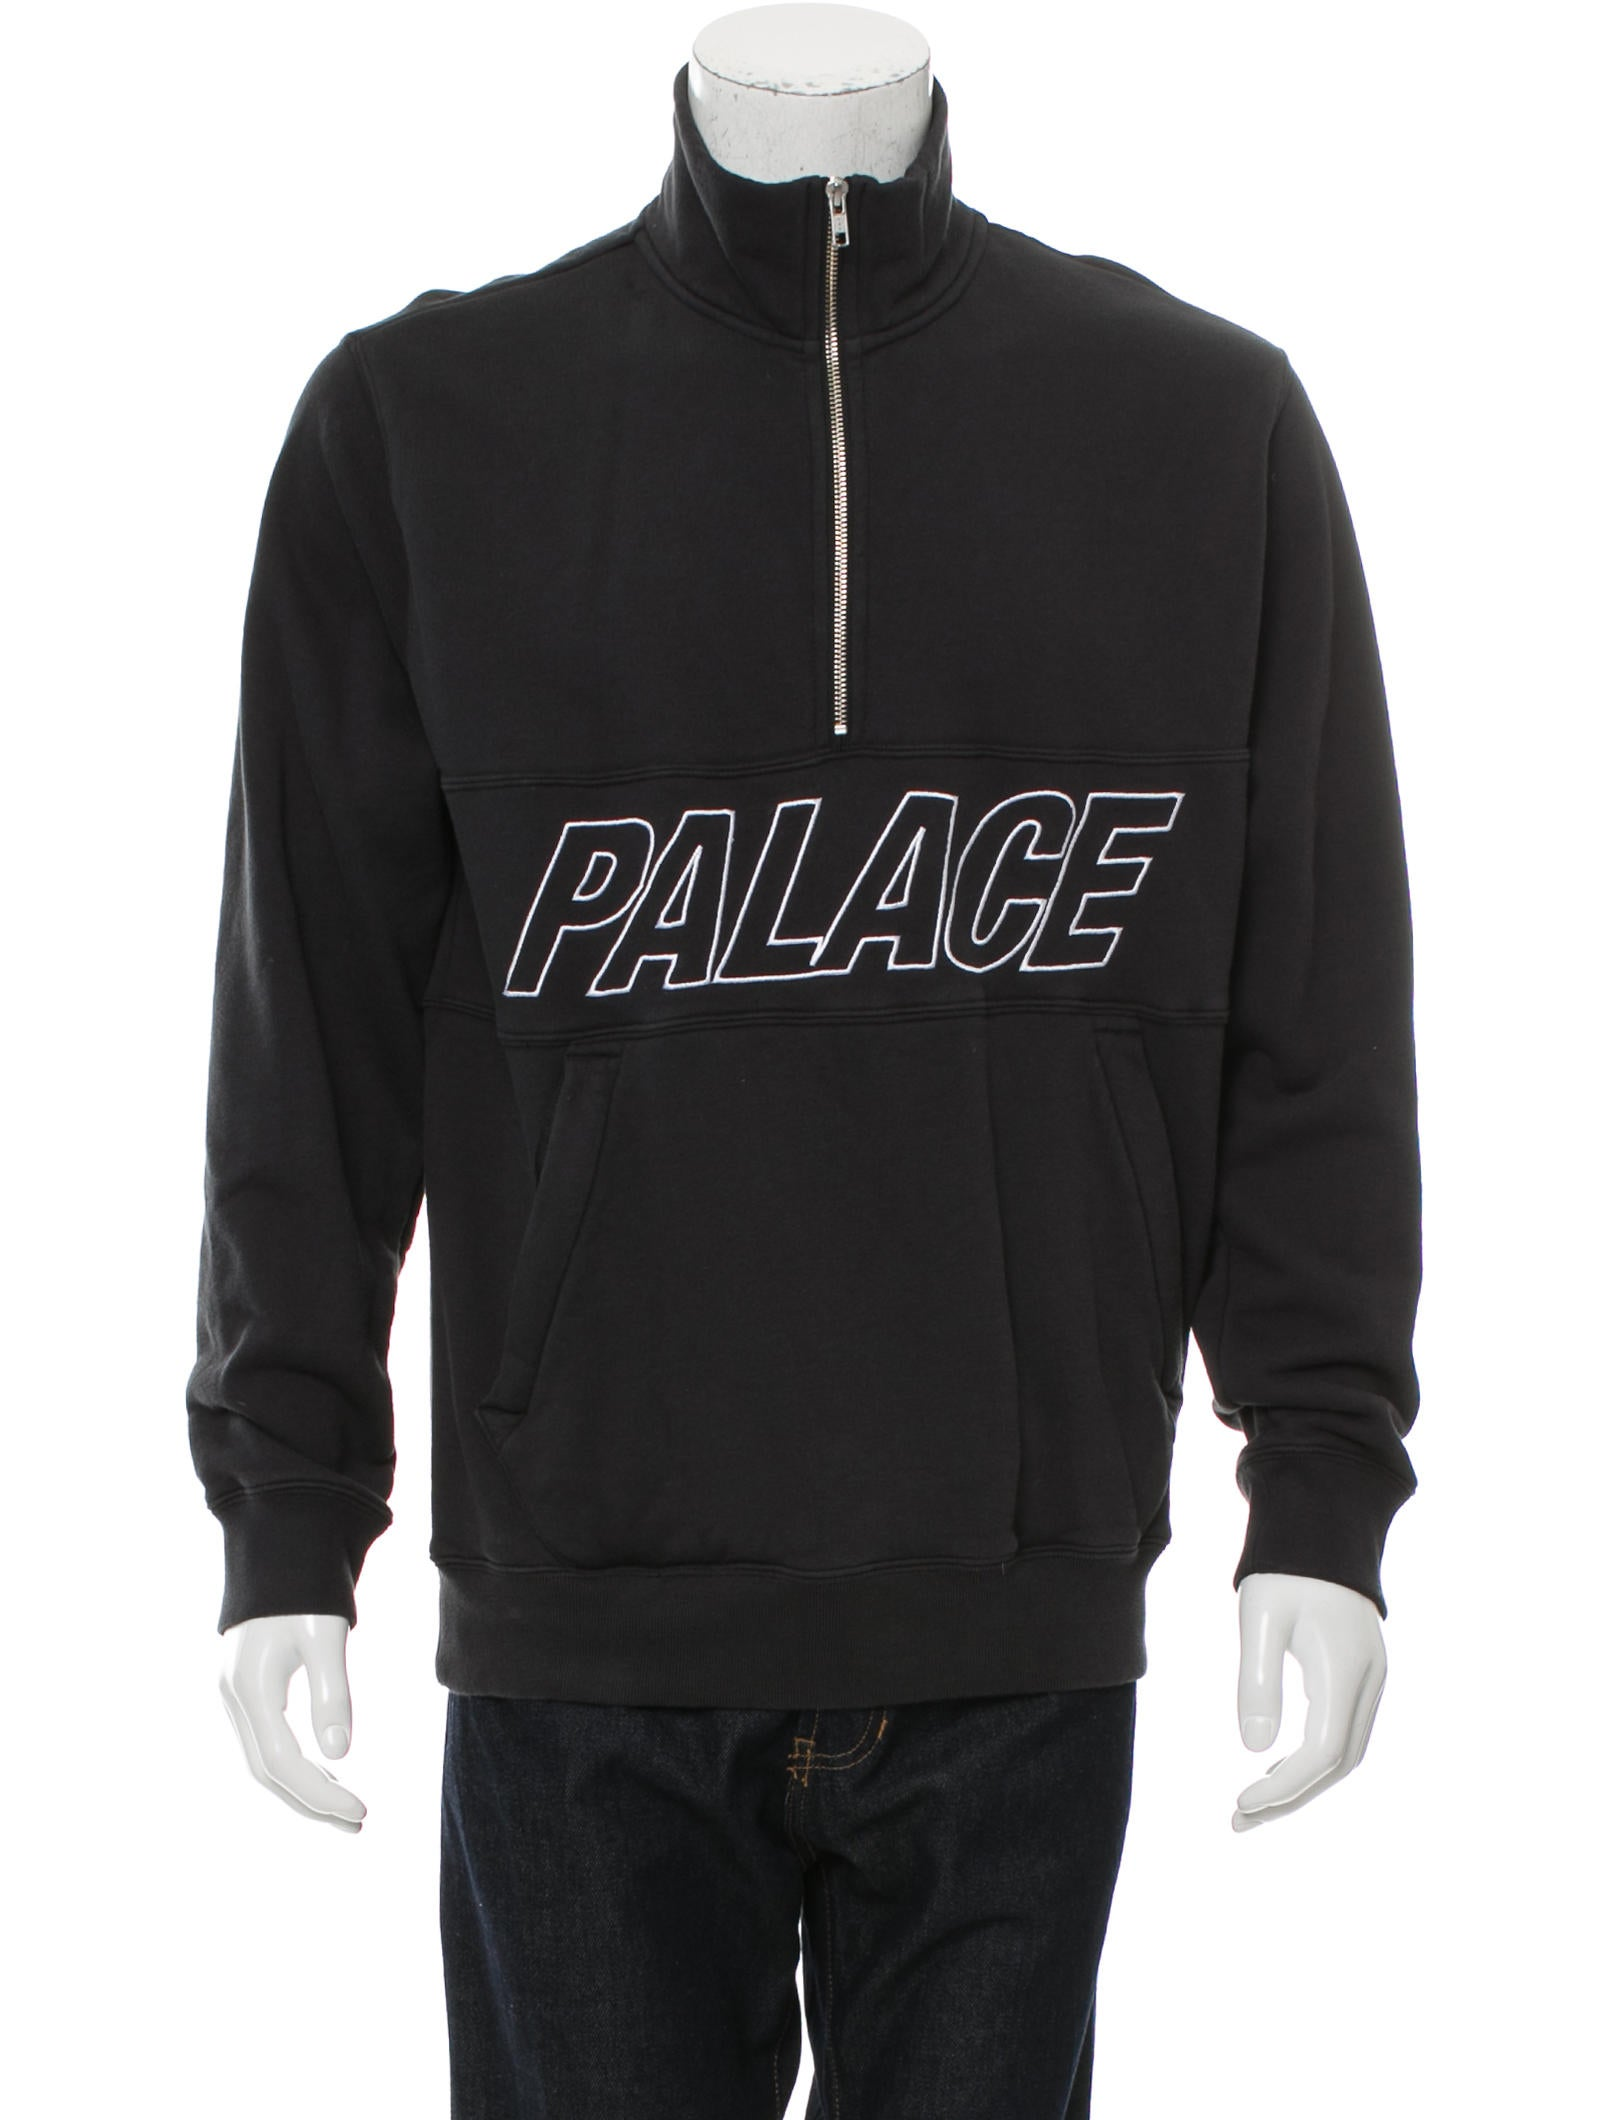 Palace Skateboards Graphic Half-Zip Sweatshirt - Clothing - WALSK20013 | The RealReal